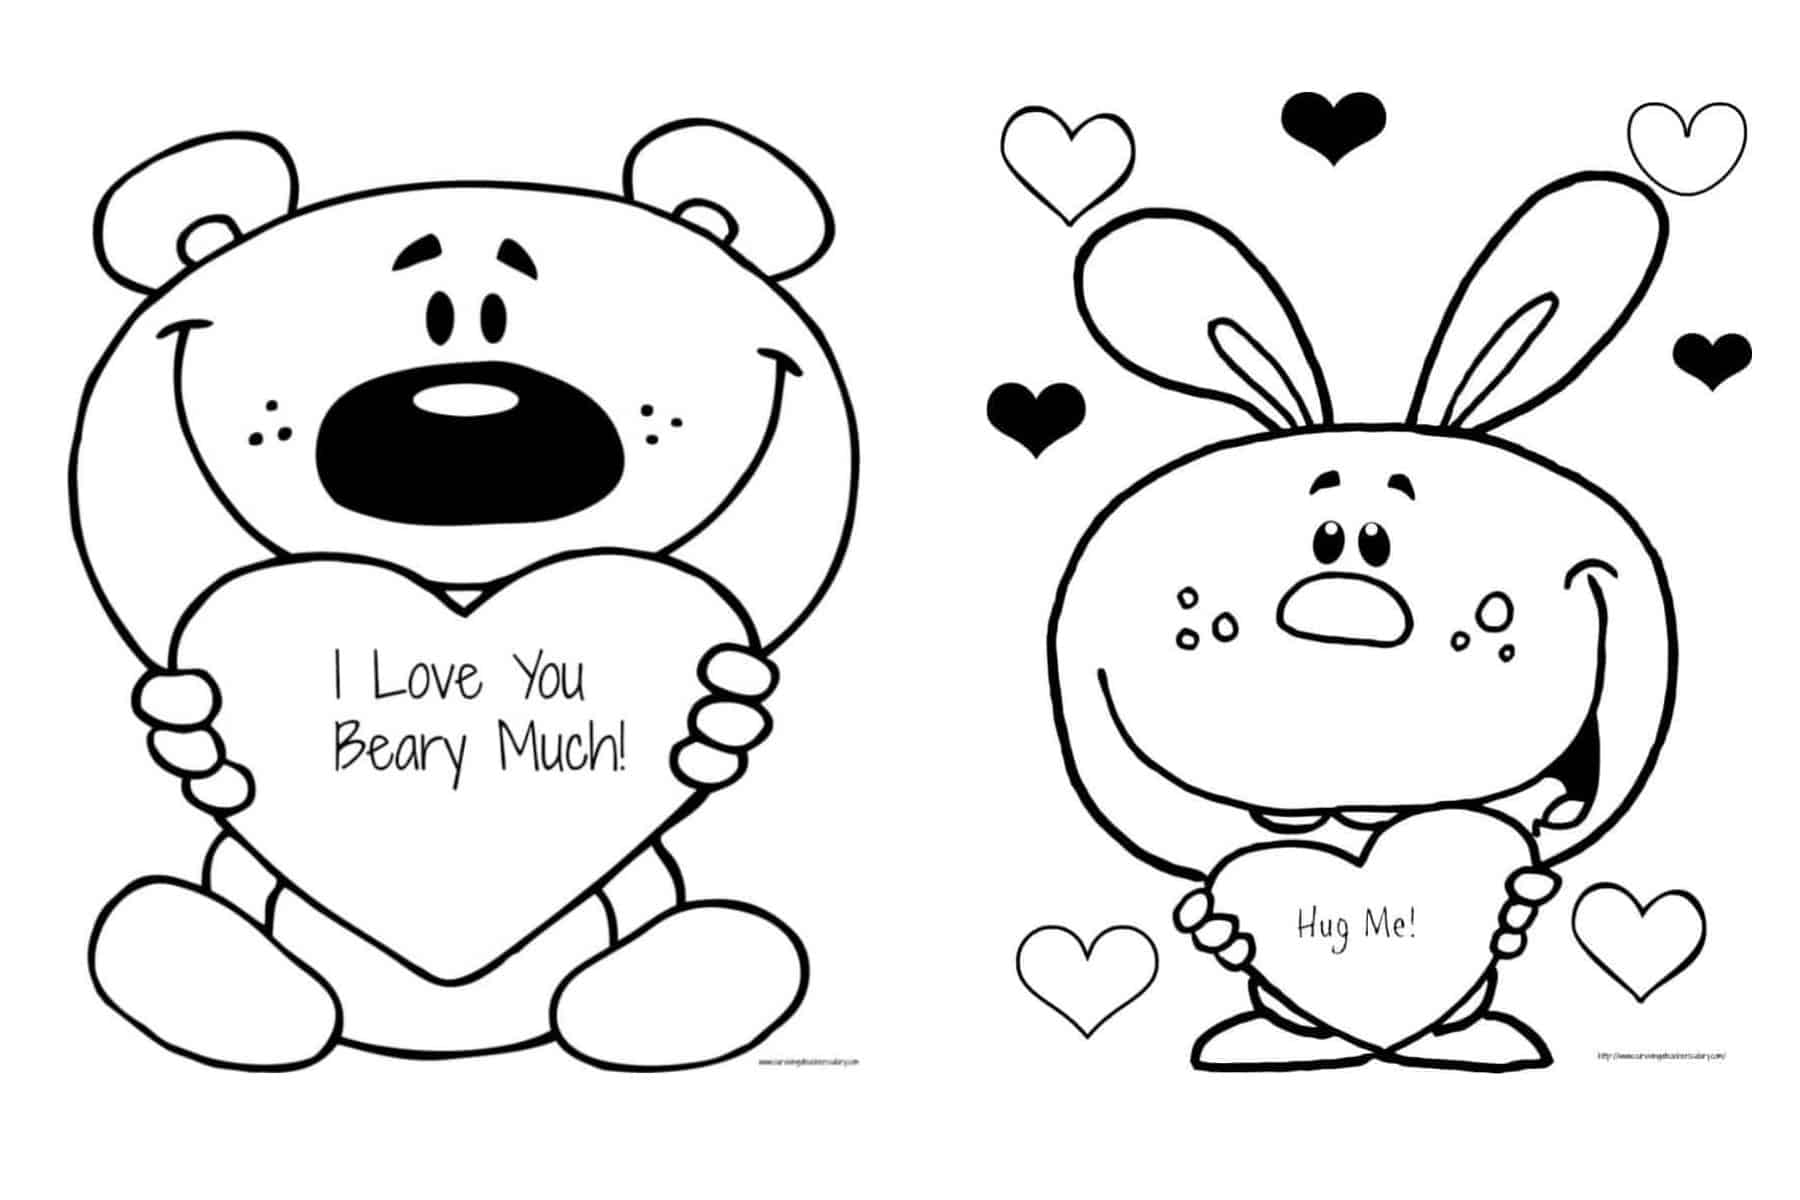 coloring sheet i love you get free printable coloring pages color your dreams with love coloring sheet i you